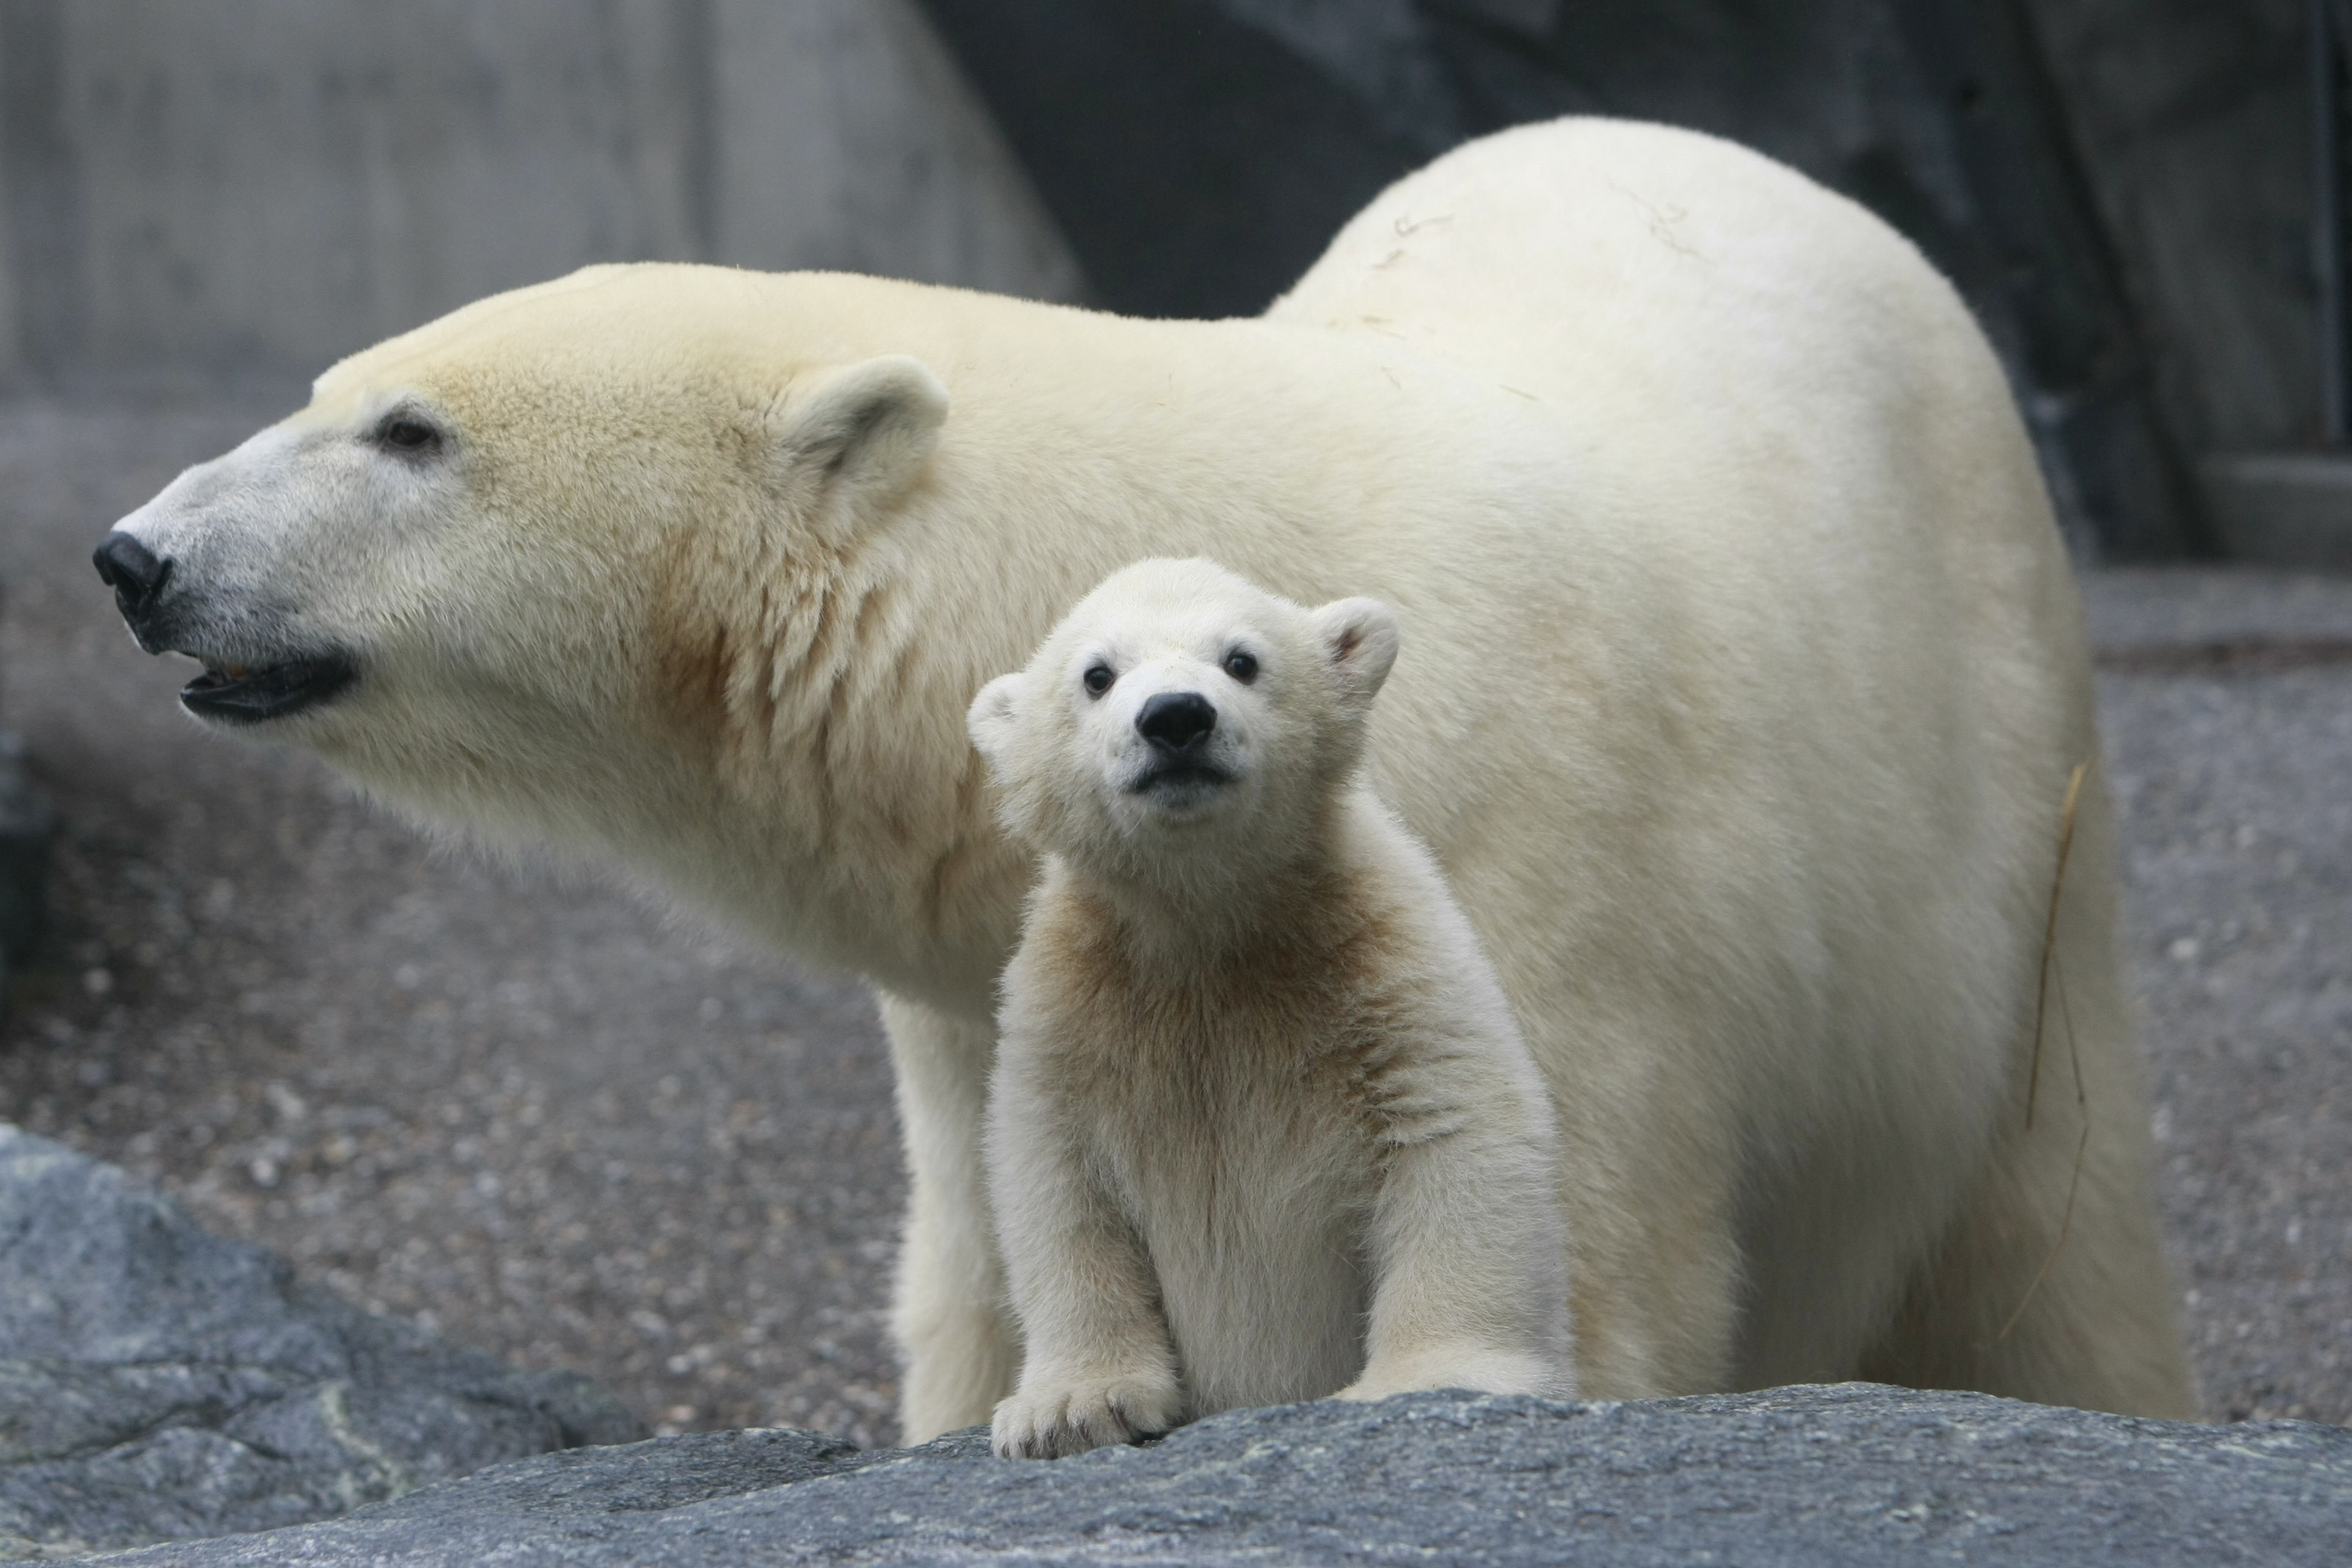 Polar bear cub Wilbaer stands next to his mother Coprinna in their enclosure at the Wilhelma zoo in Stuttgart during his first appearance April 16, 2008. REUTERS/Alex Grimm (GERMANY) - BM2E44G11PT01